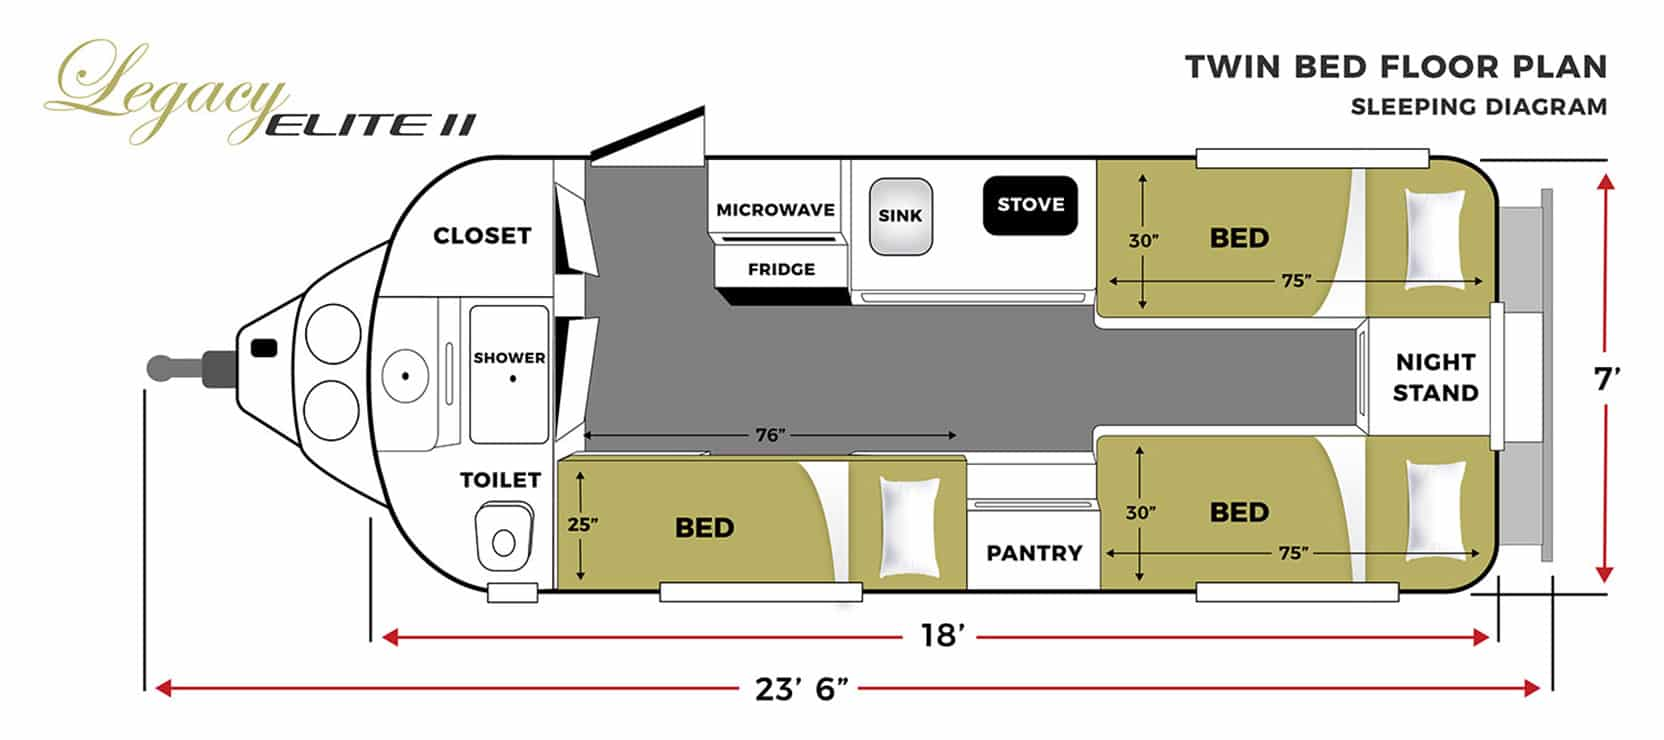 oliver travel trailers legacy elite 2 twin bed sleeping floor plan horizontal